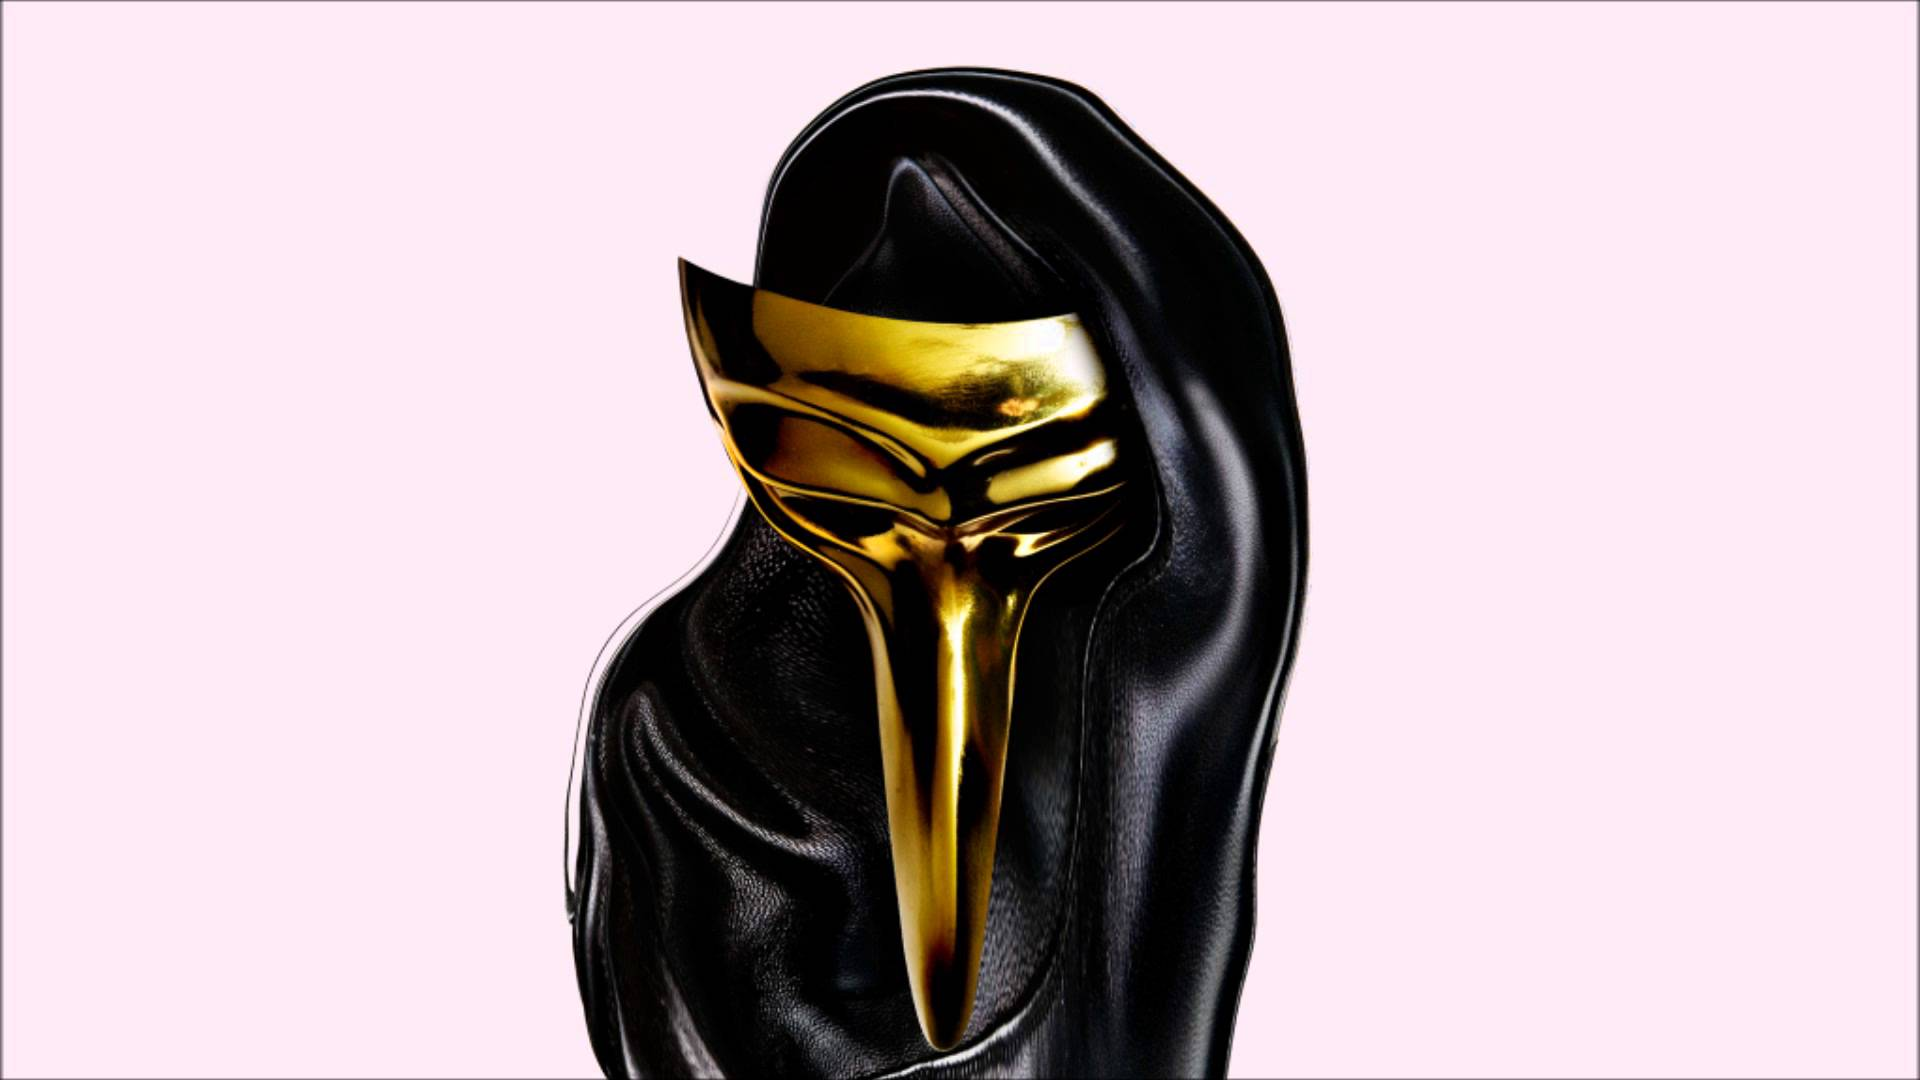 The Sundown Sessions featuring CLAPTONE